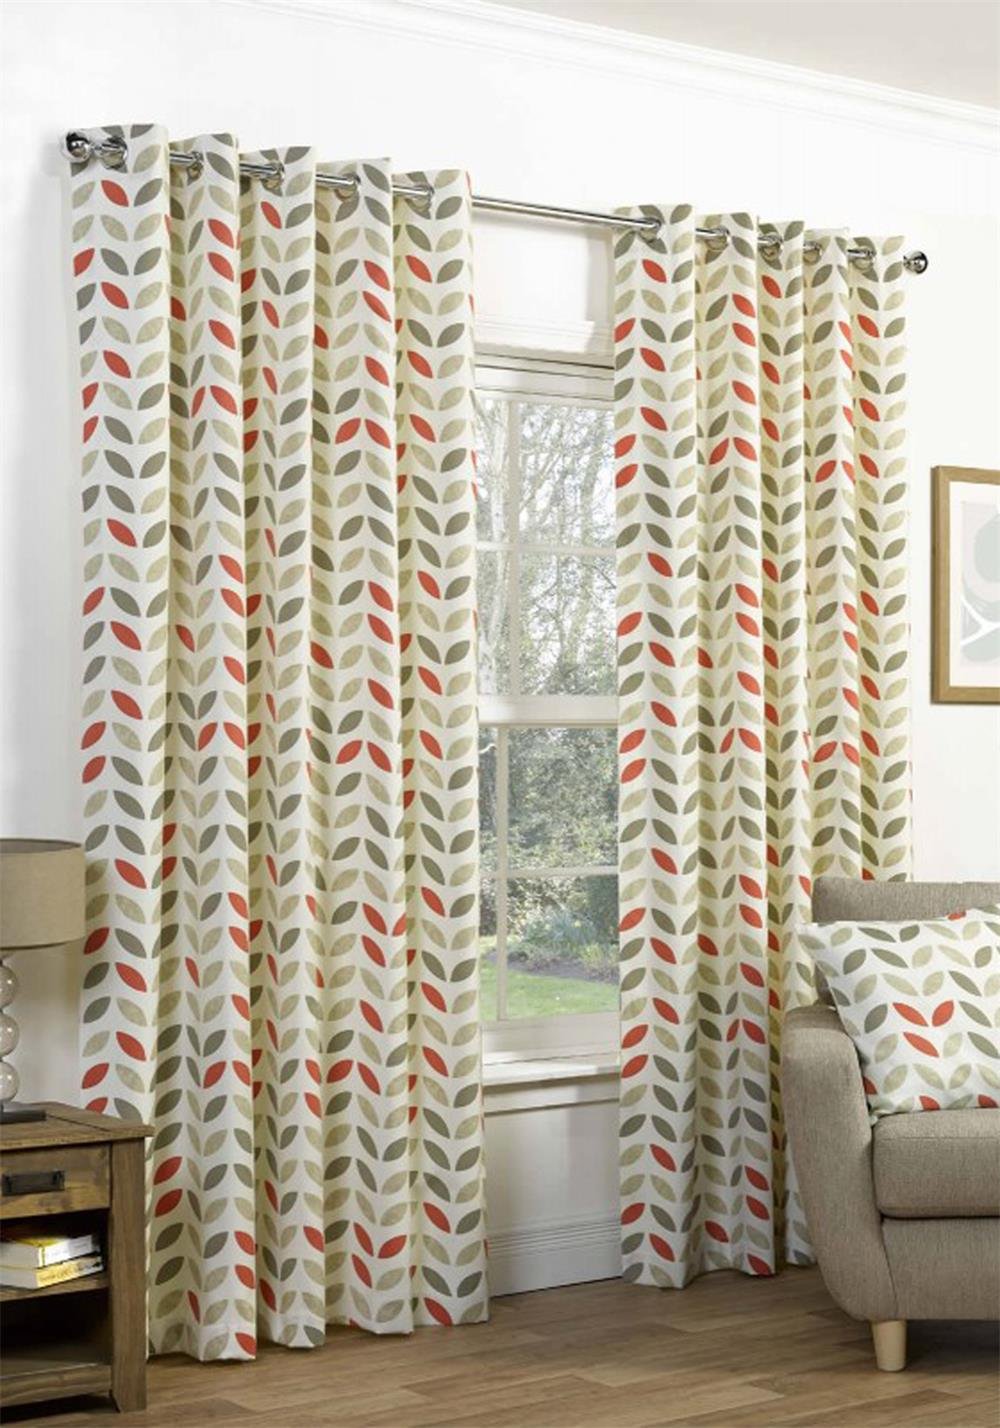 Hickeys Neo Ready Made Eyelet Curtains, Spice